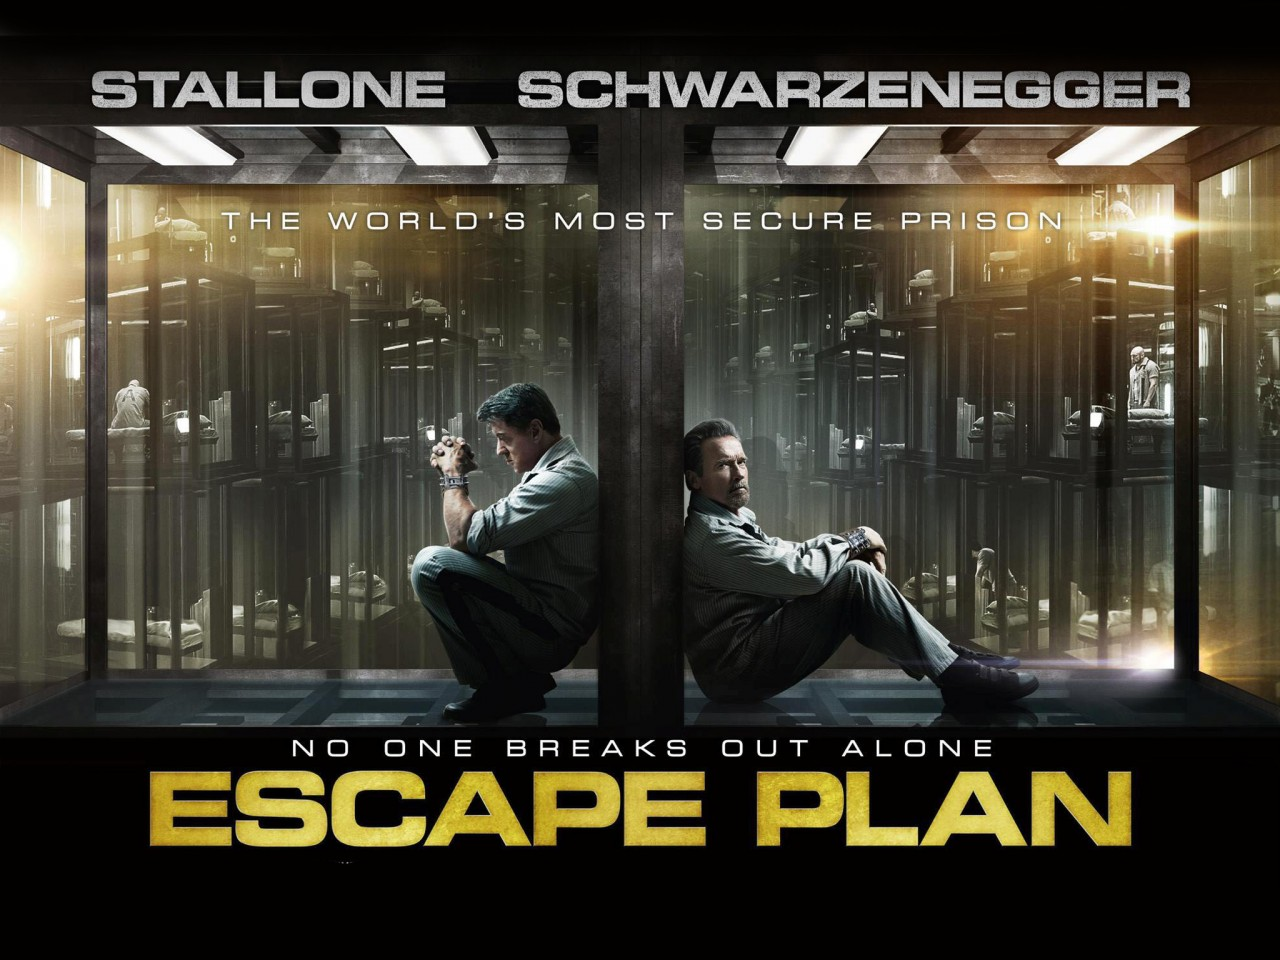 Iphone 5 Hd Wallpapers Cars Escape Plan 2013 Movie Wallpapers Hd Wallpapers Id 12967